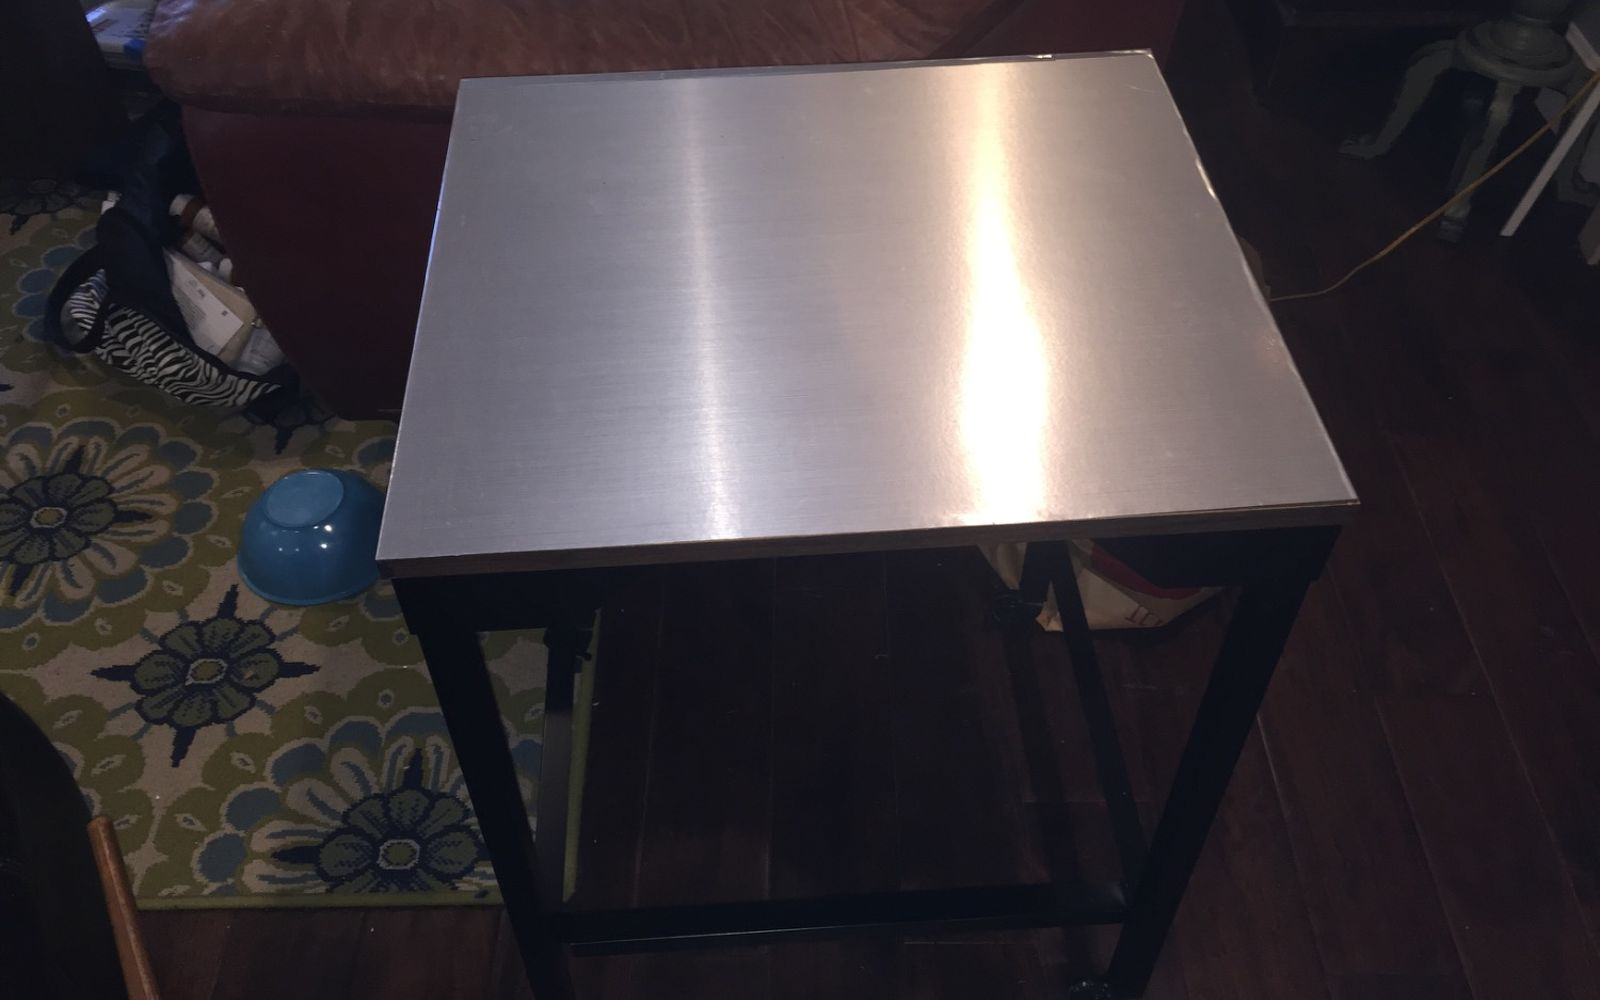 s 31 astounding things you didn t know you could do with contact paper, Or turn a wooden table into a sleek metal one